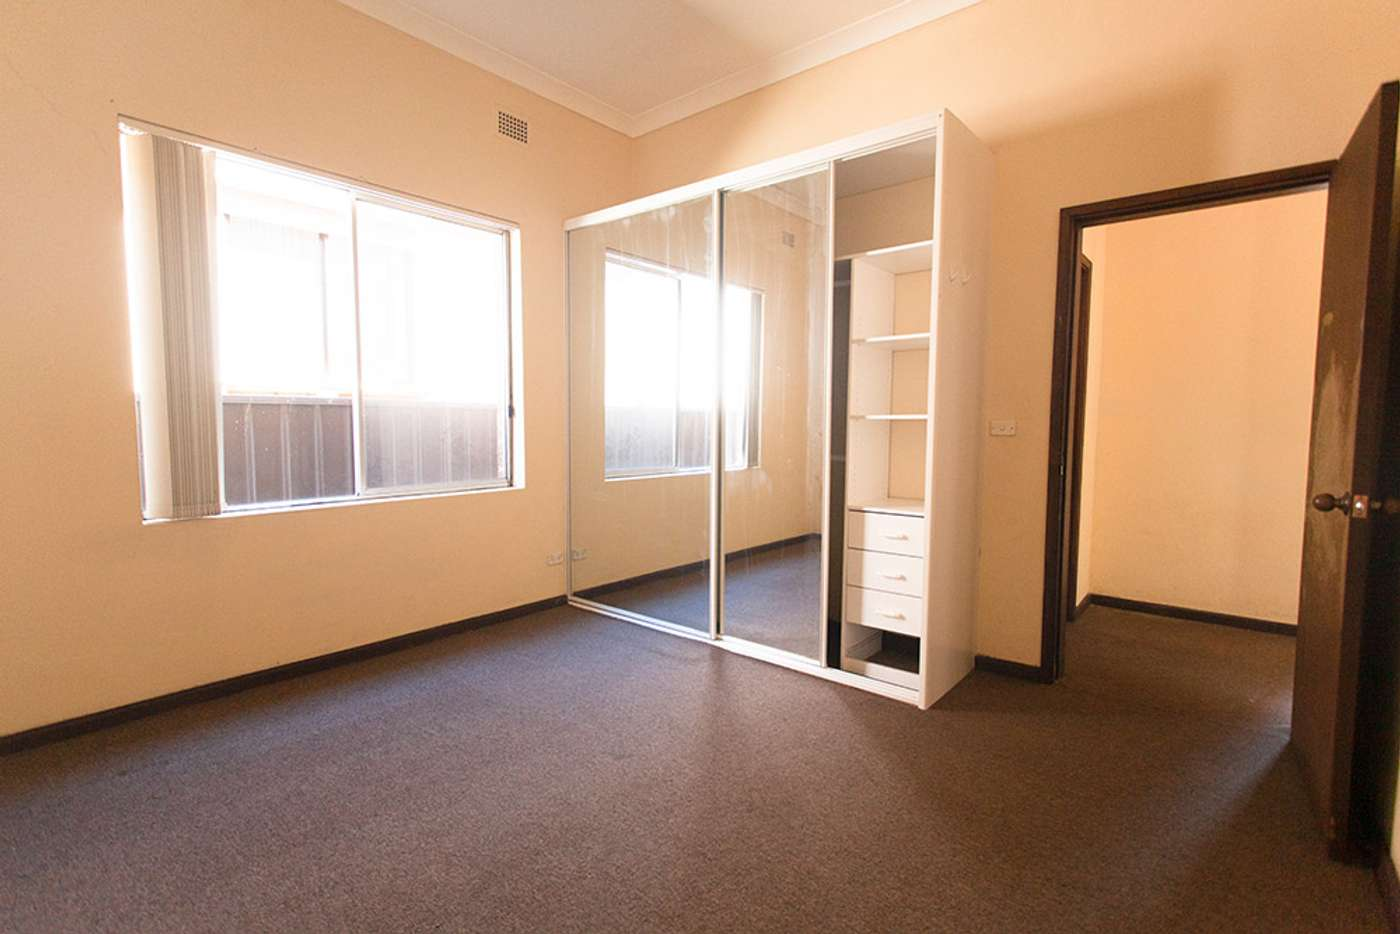 Seventh view of Homely house listing, 8 Fifth Street, Granville NSW 2142